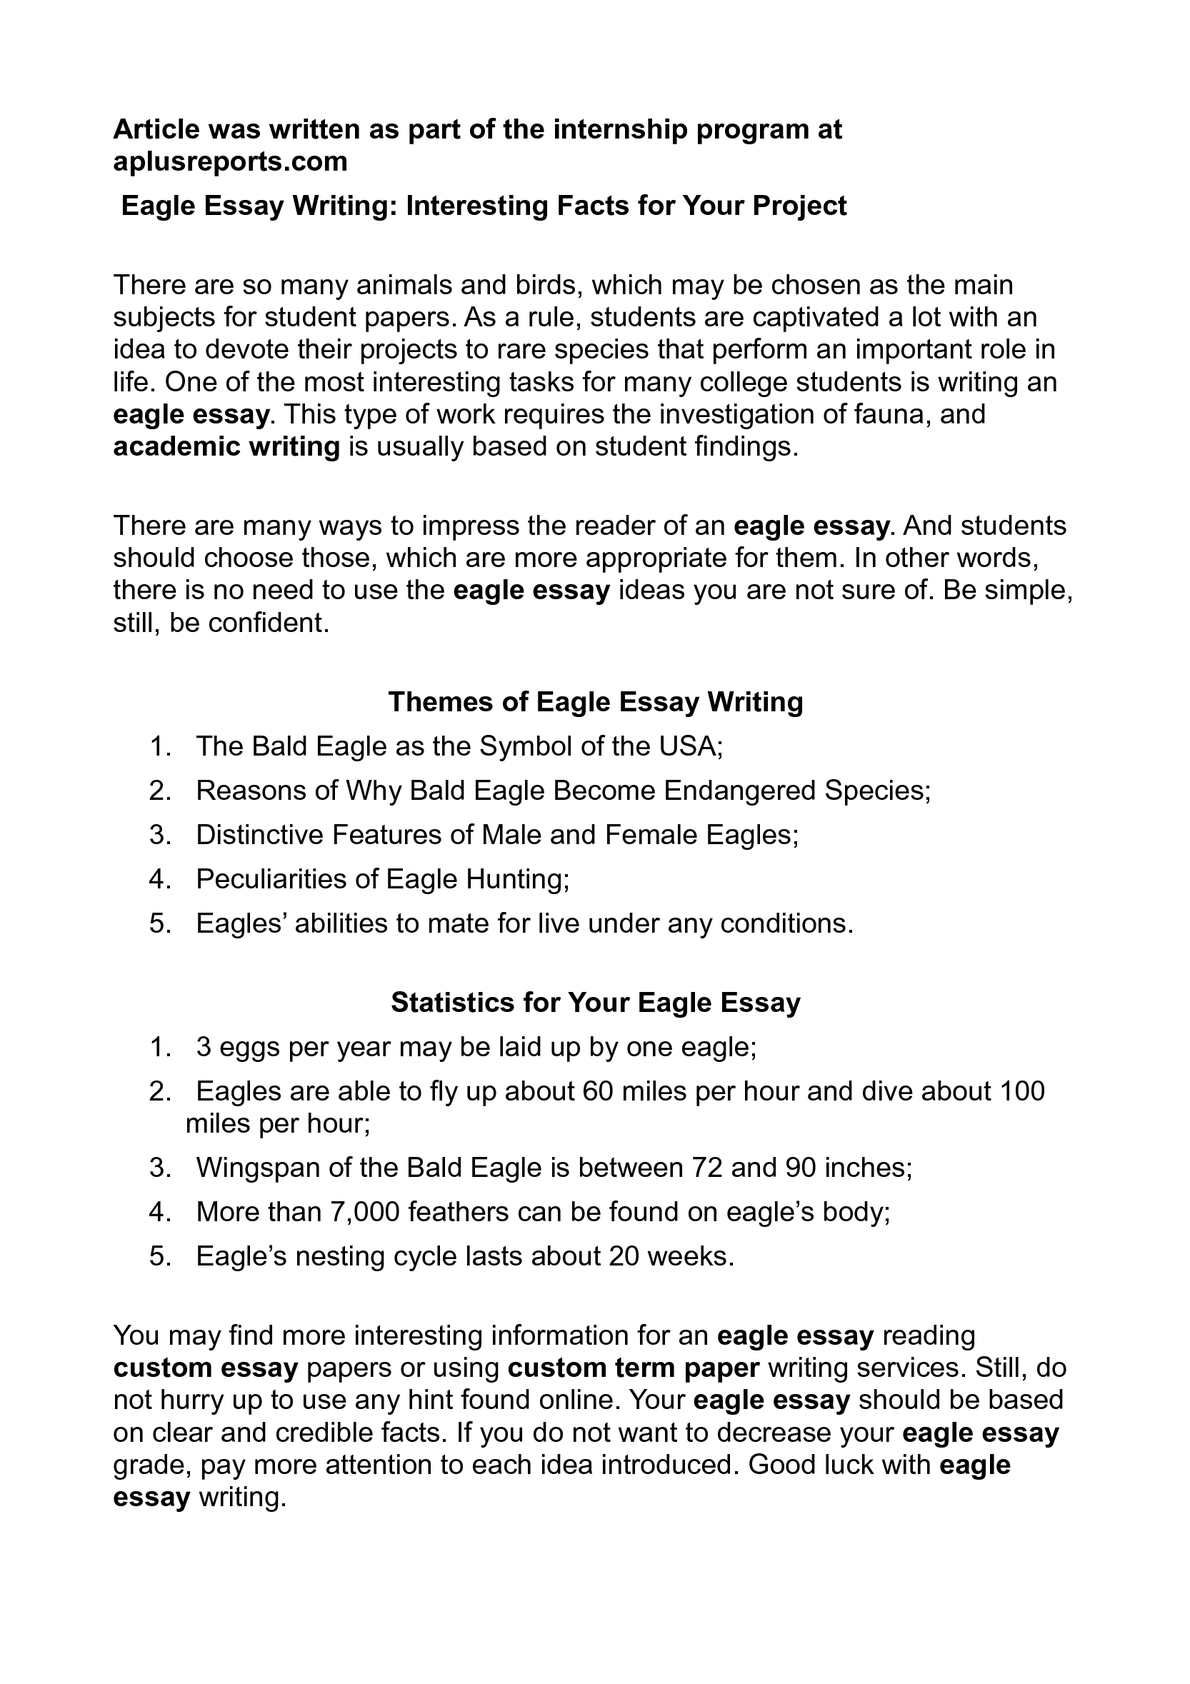 Essay writing service in 3/6/12 hours